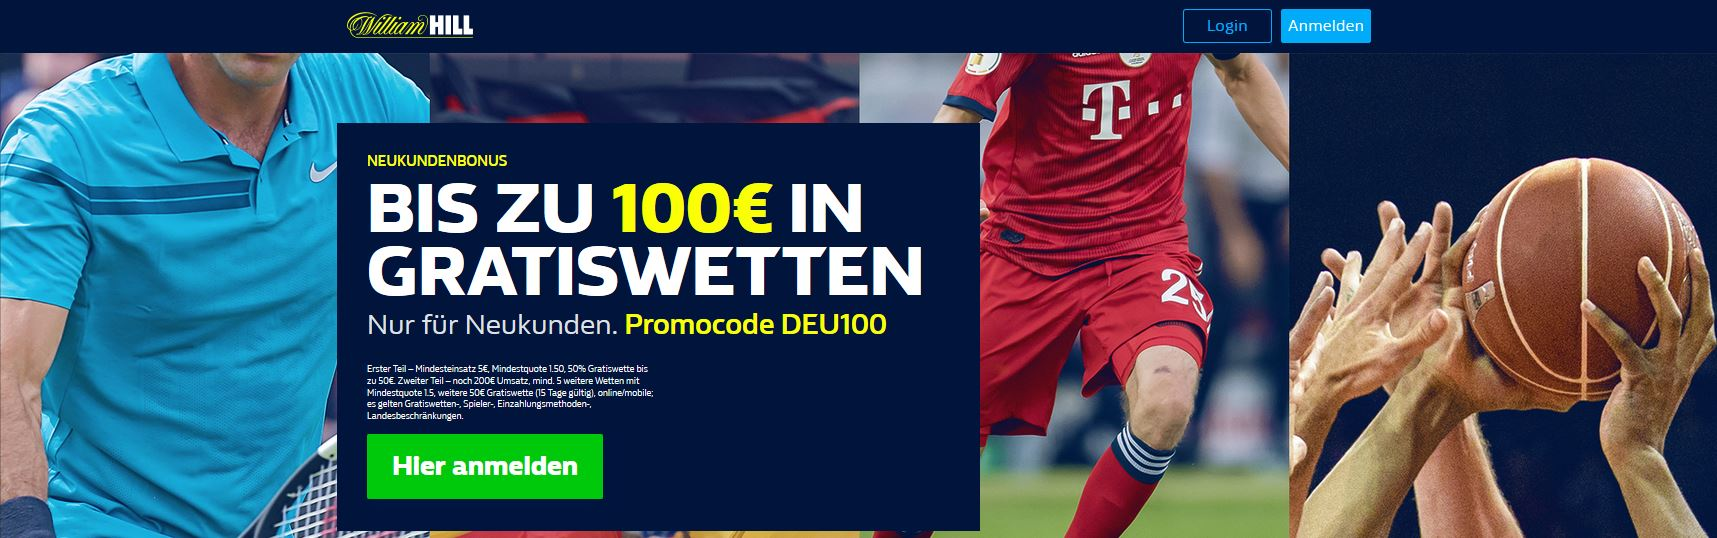 William Hill F25 Promo Code